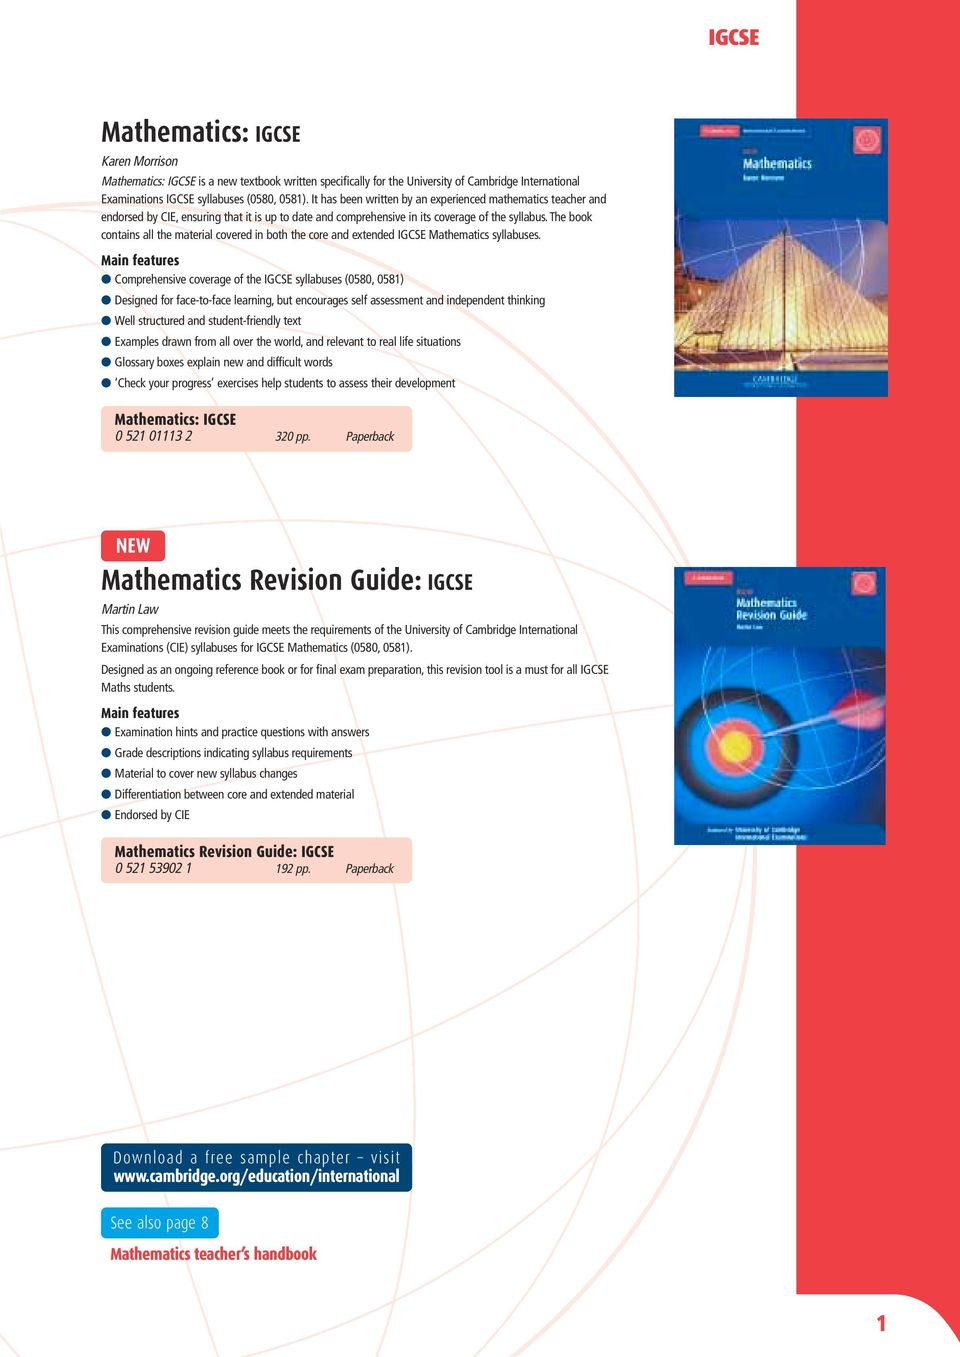 The book contains all the material covered in both the core and extended IGCSE  Mathematics syllabuses